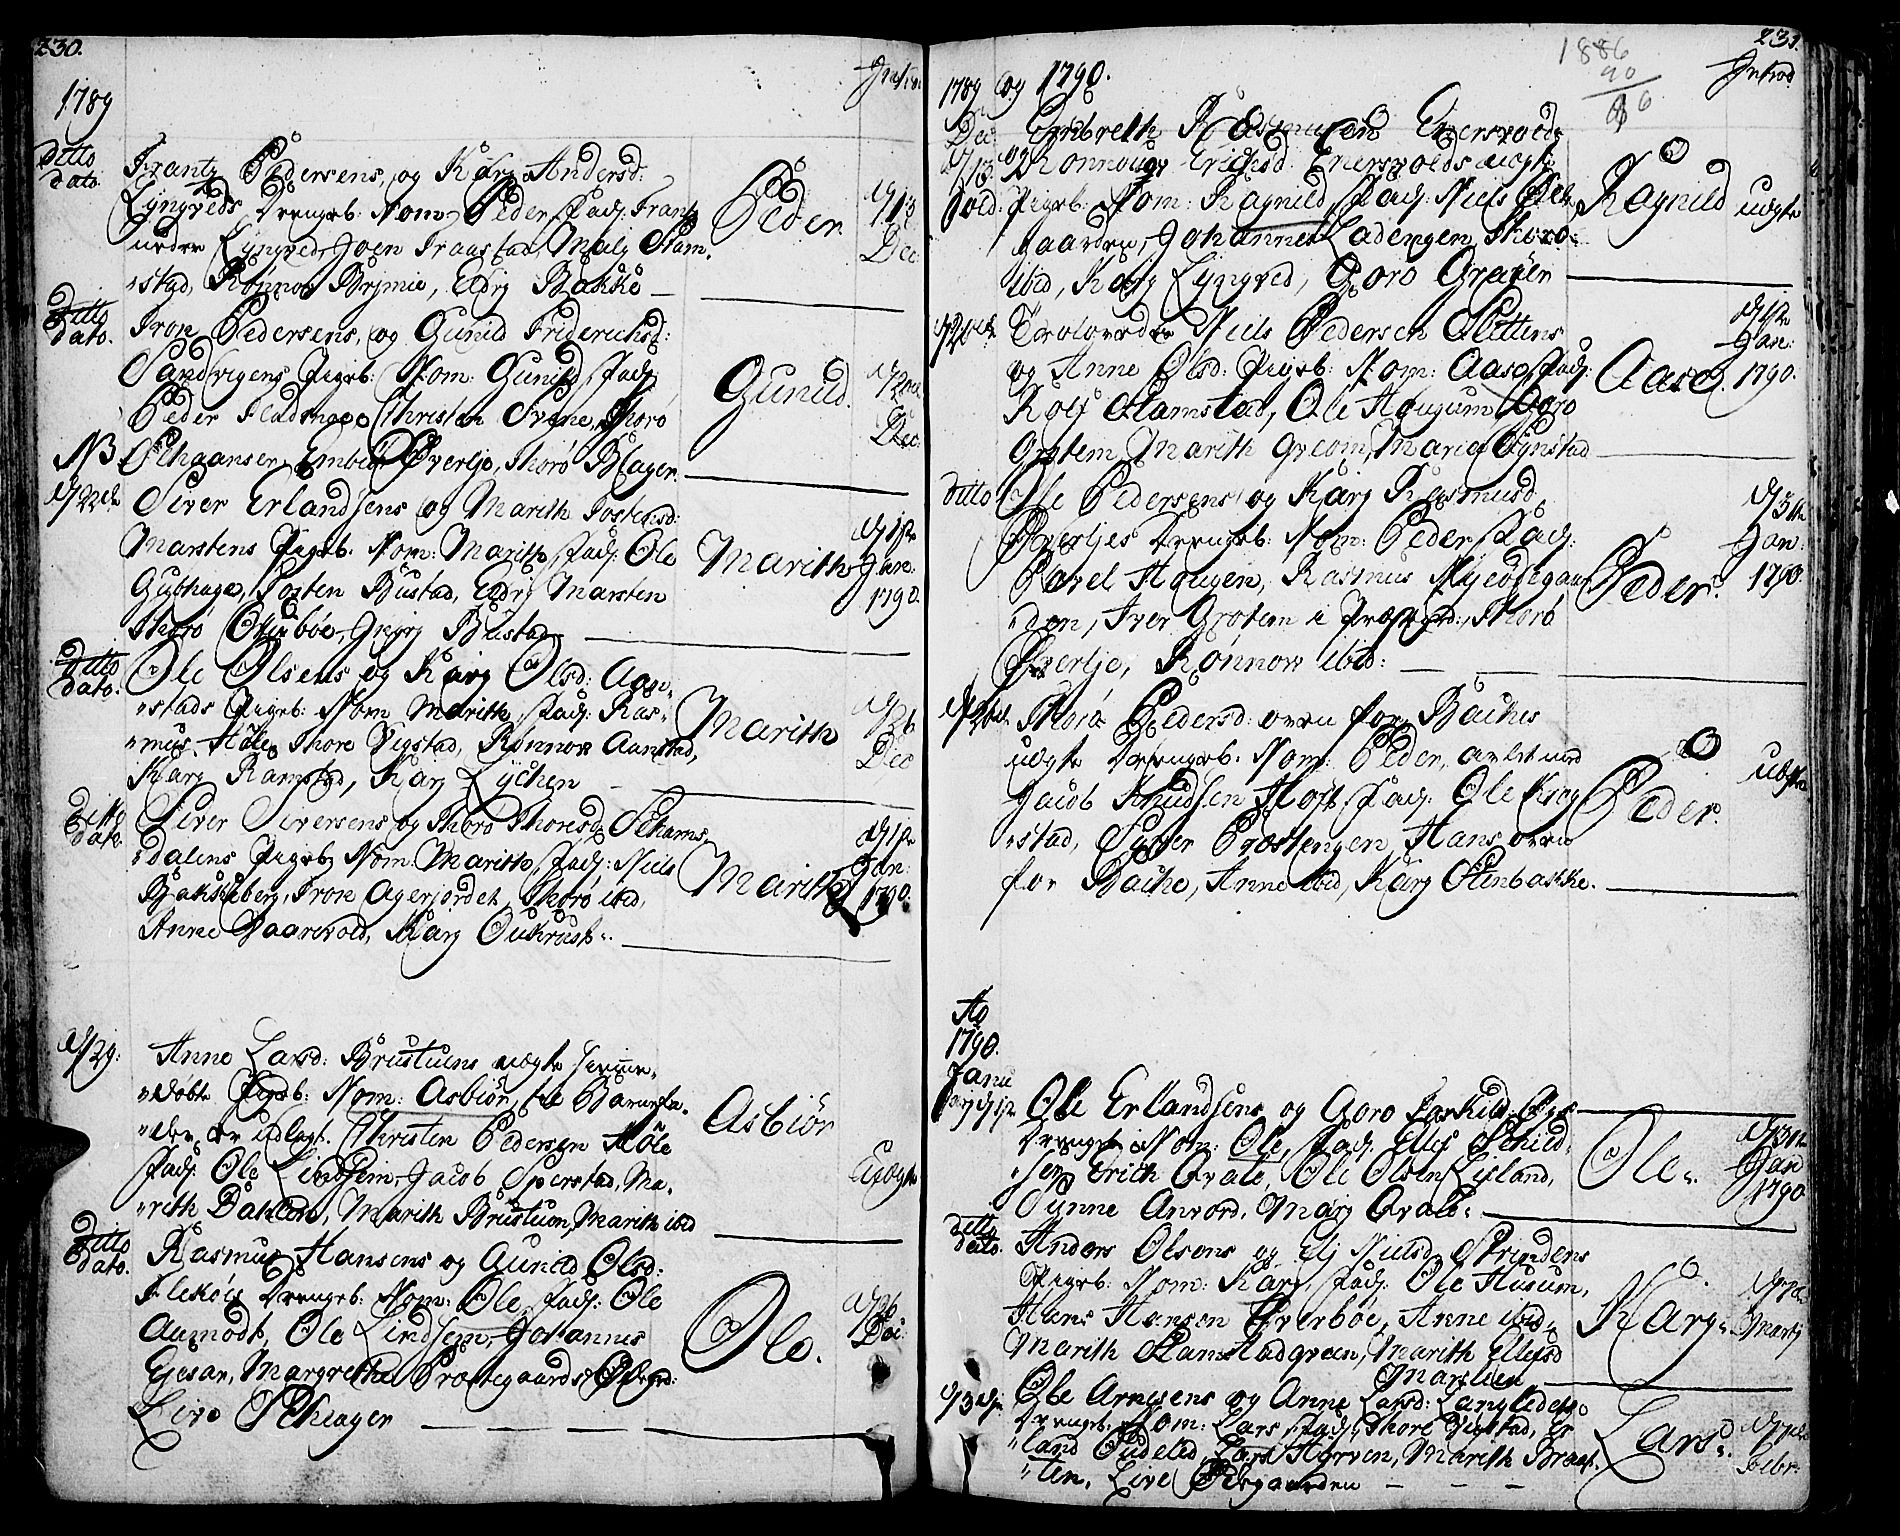 SAH, Lom prestekontor, K/L0002: Parish register (official) no. 2, 1749-1801, p. 230-231